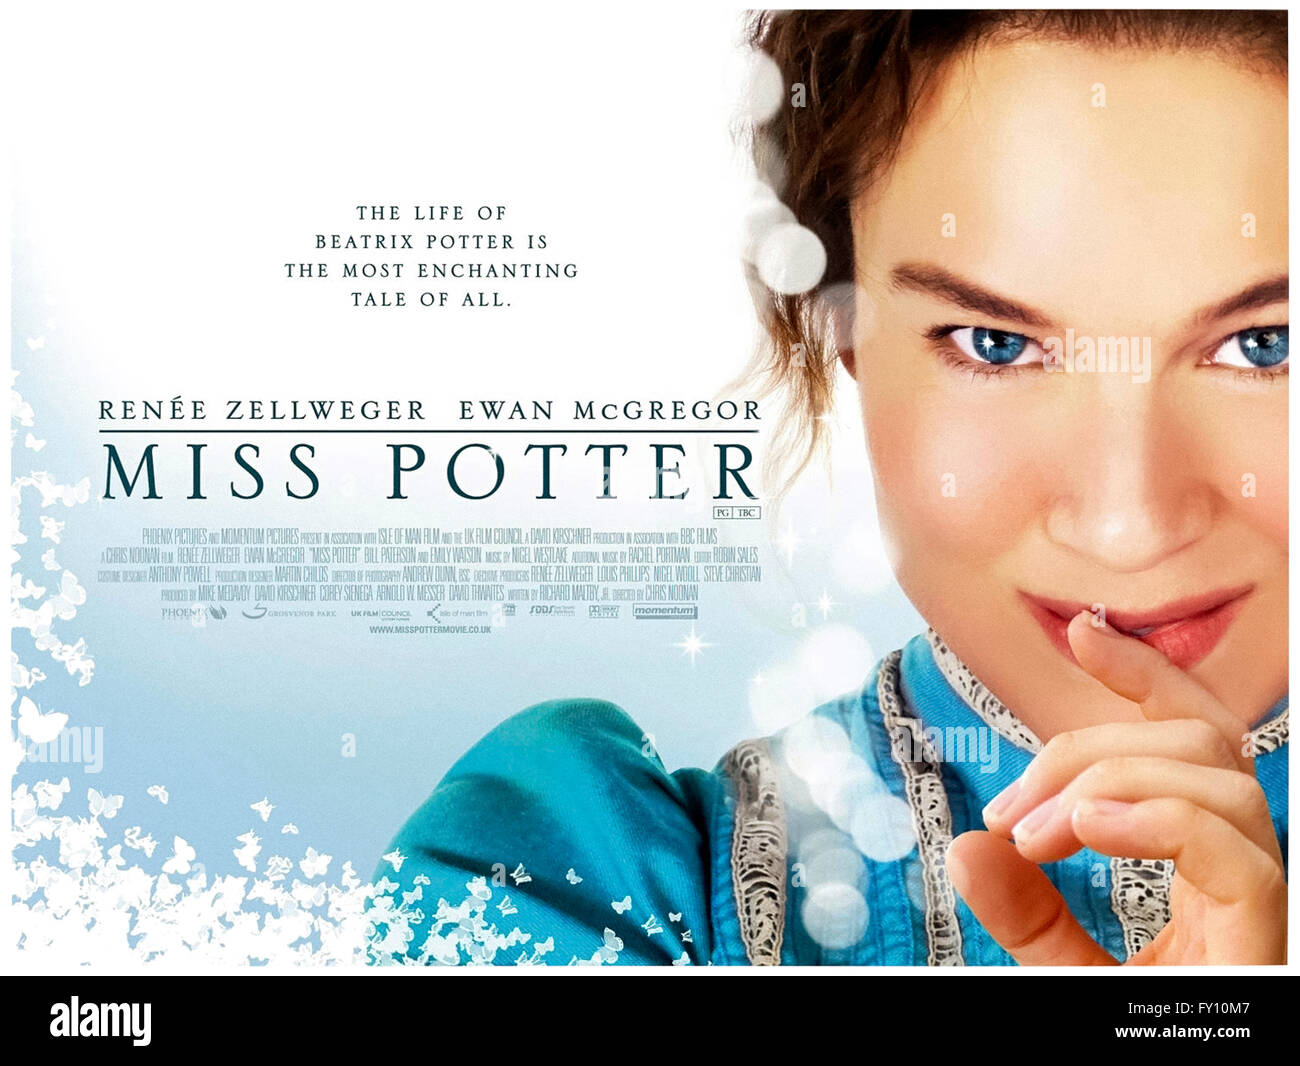 'Miss Potter' 2006 film about Beatrix Potter the author of the much loved 'The Tale of Peter Rabbit' children's - Stock Image